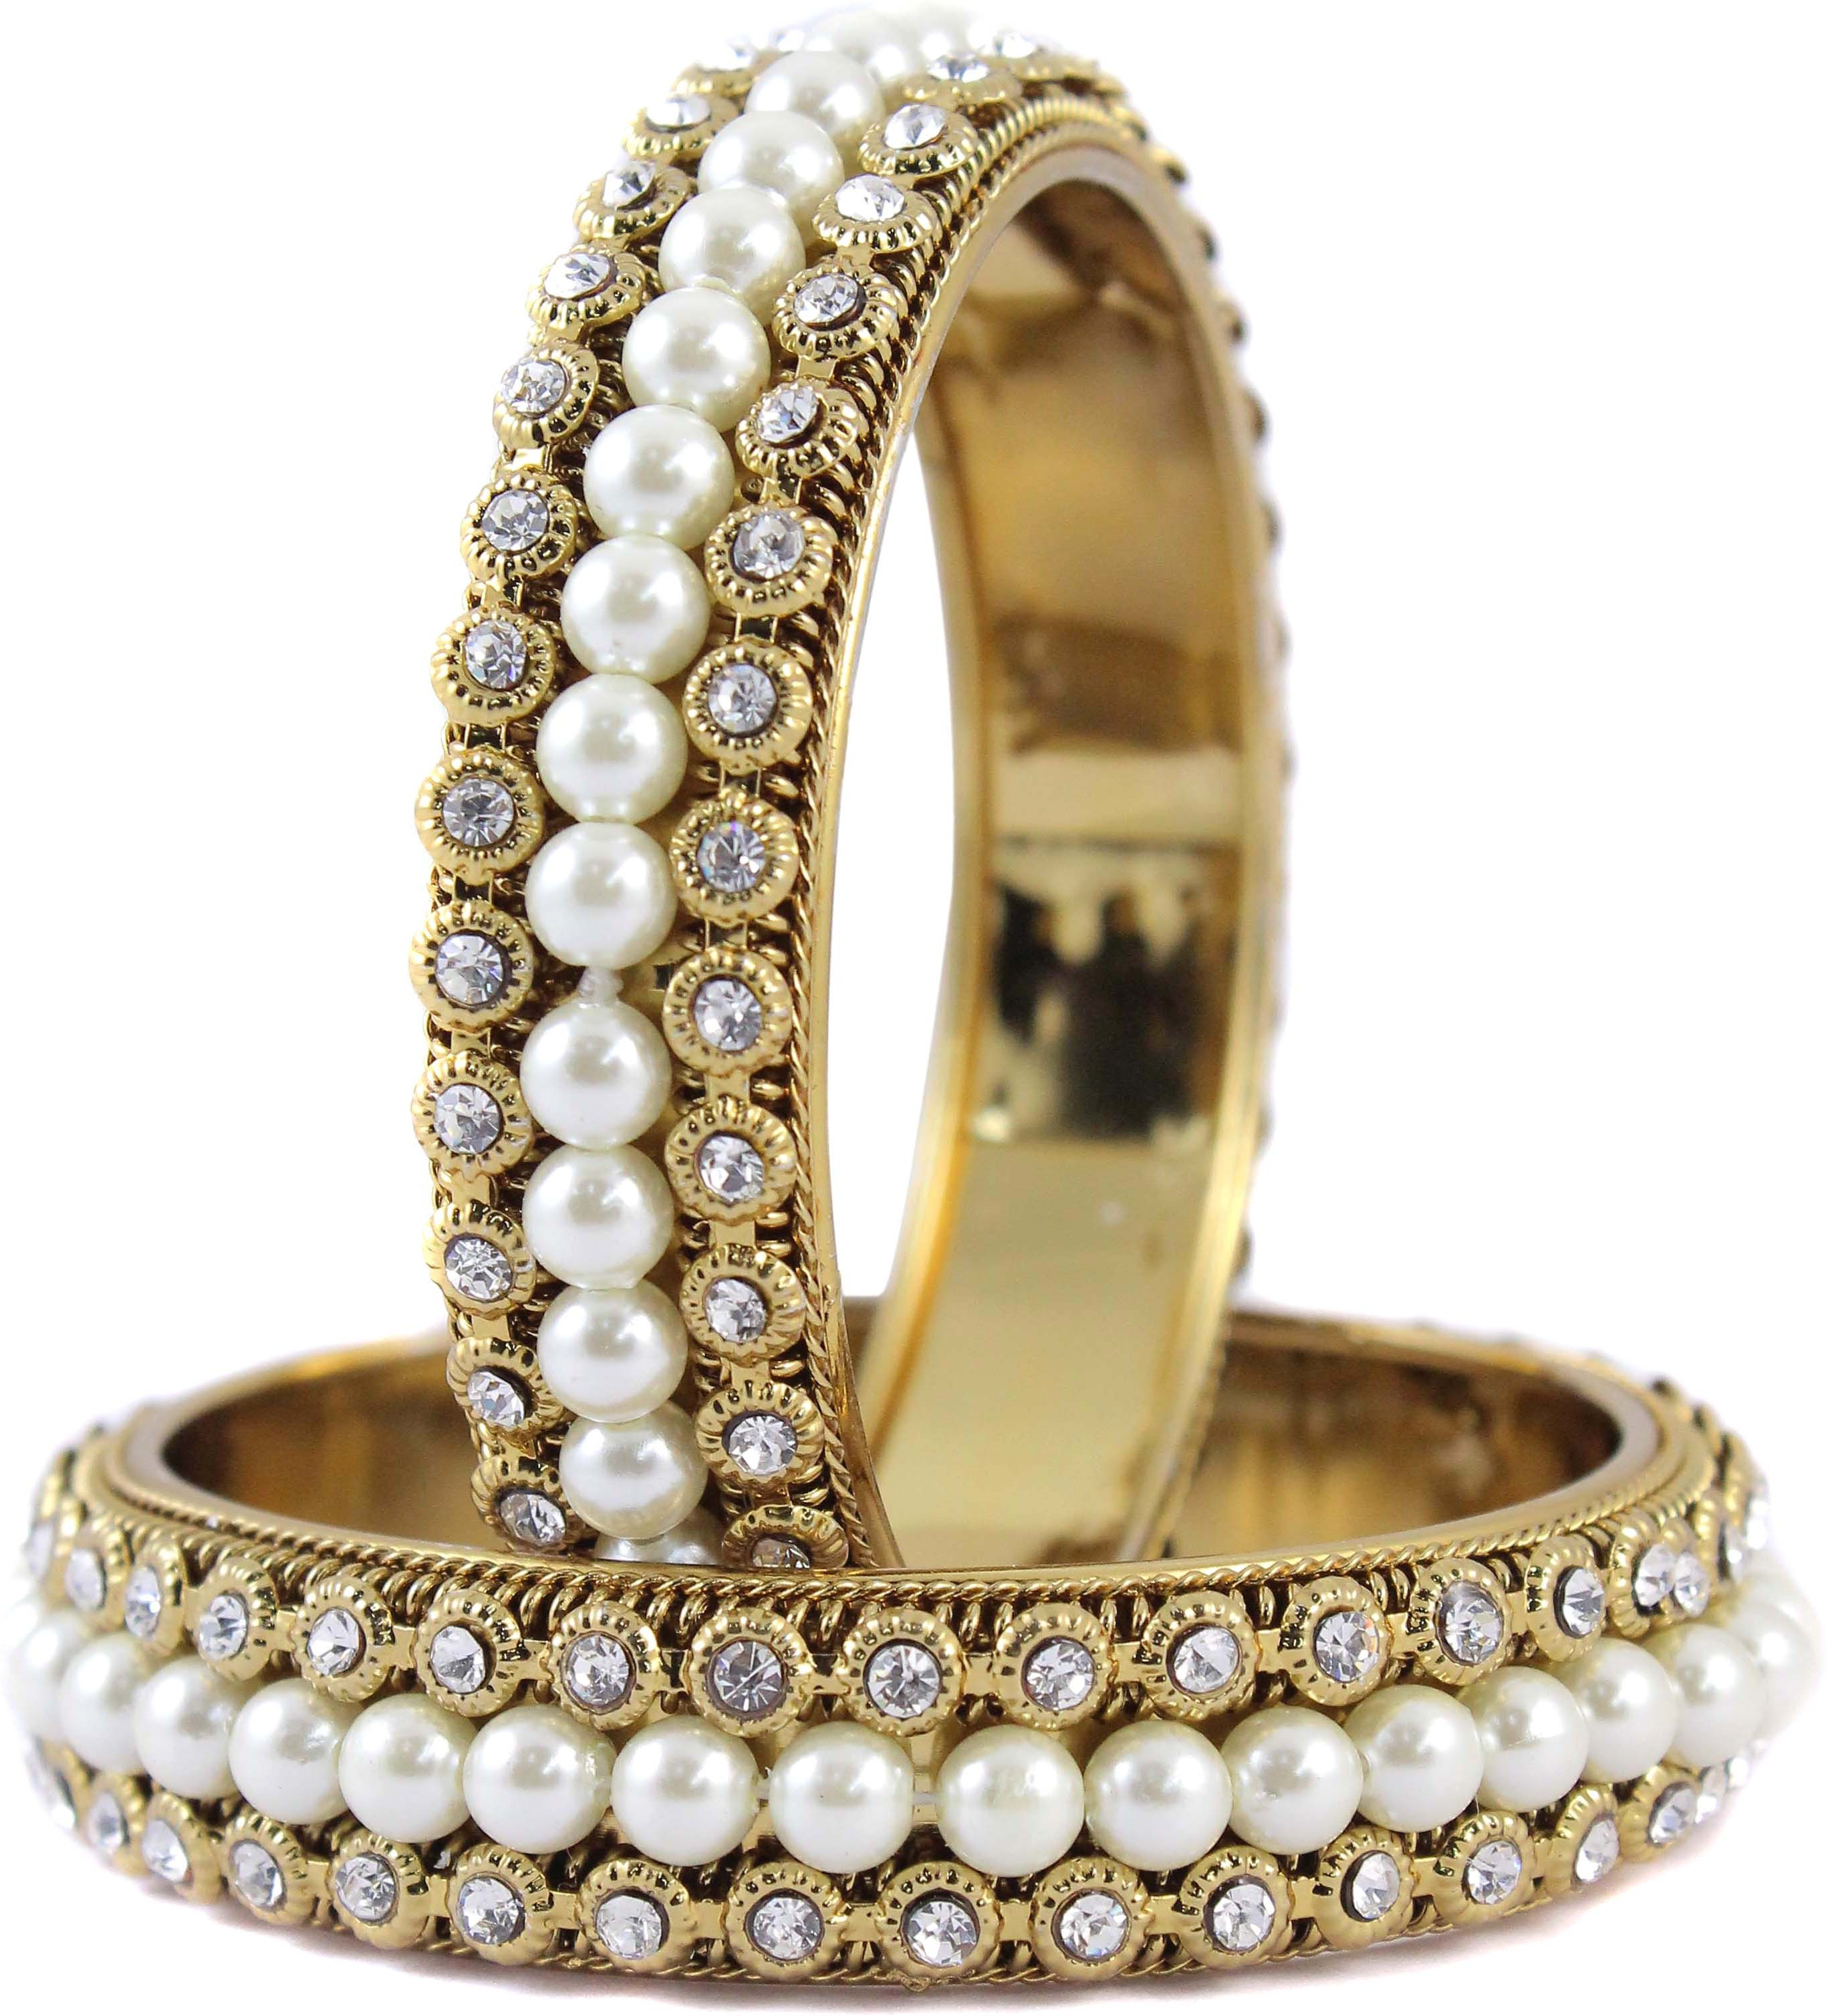 Deals - Delhi - Minimum 50% Off <br> Earrings, Necklaces, Bracelets...<br> Category - jewellery<br> Business - Flipkart.com